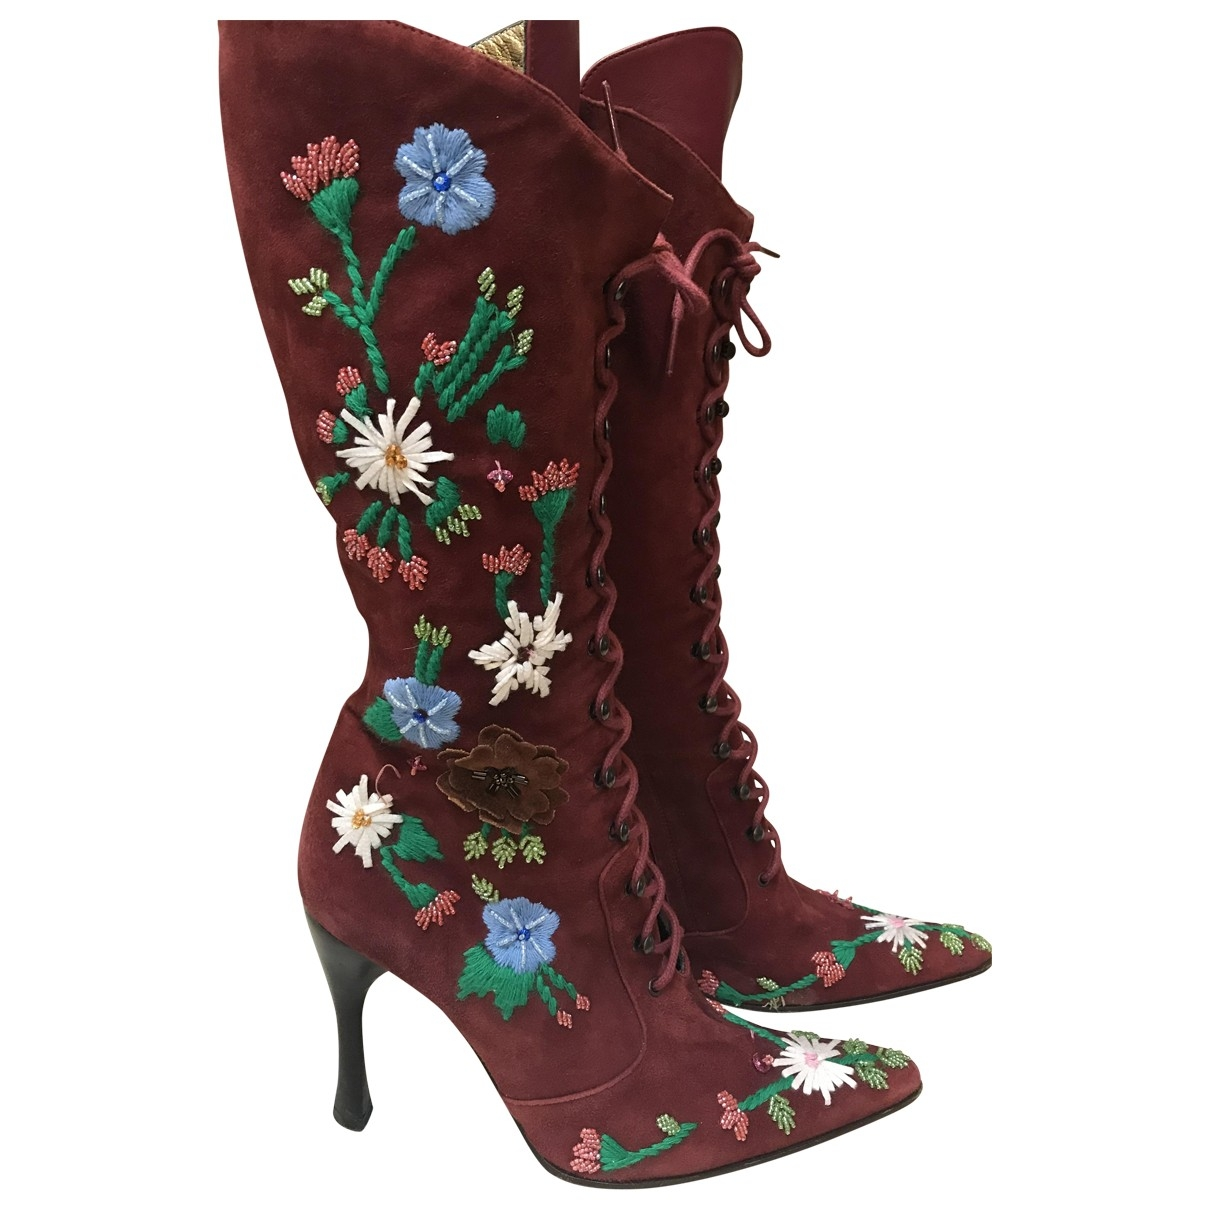 D&g \N Burgundy Leather Boots for Women 39 EU